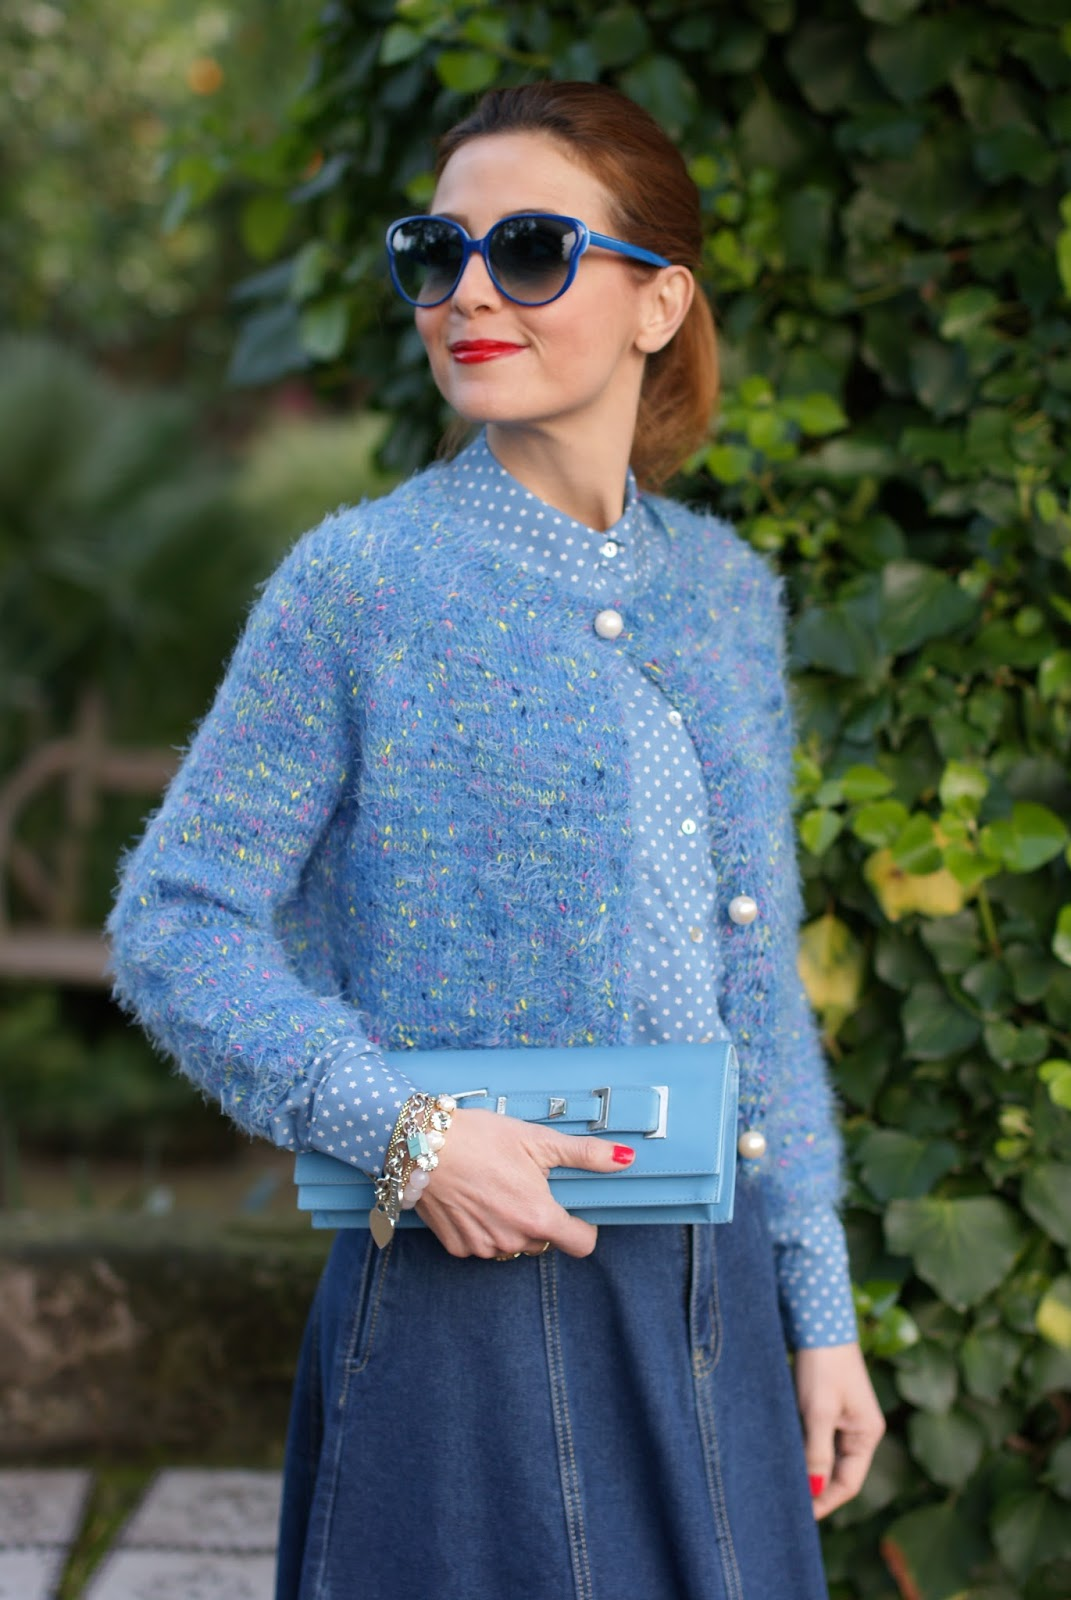 Bon ton girly look with Denim midi circle skirt, star print shirt and Le Silla clutch on Fashion and Cookies fashion blog, fashion blogger style